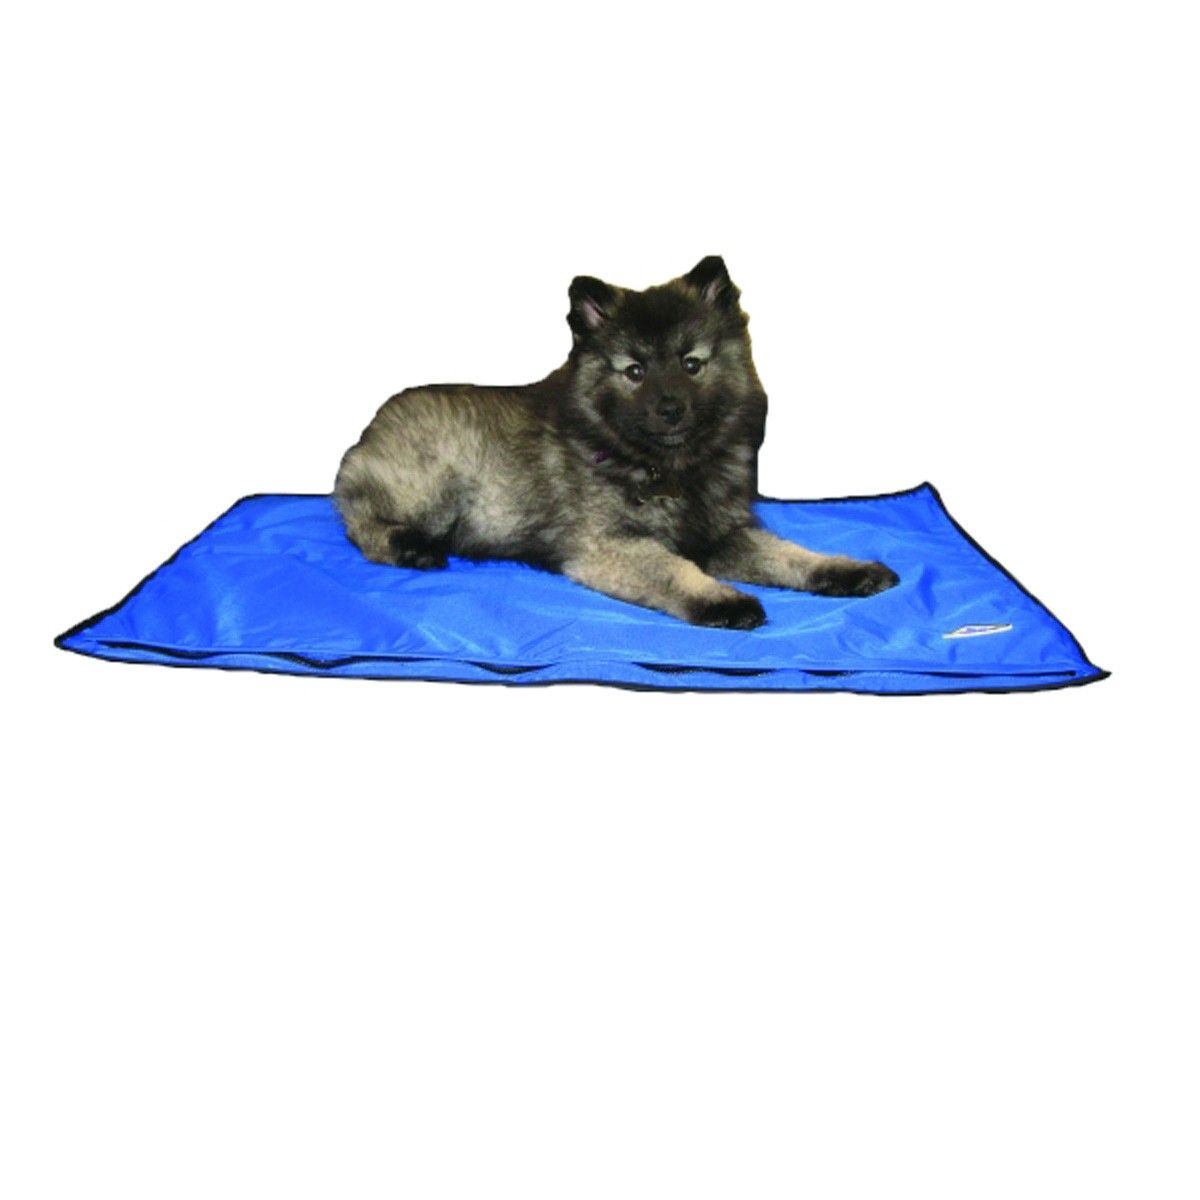 Drykewl Evaporative Cooling Dog Pad Dog Pads Dog Training Pads Dog Diapers